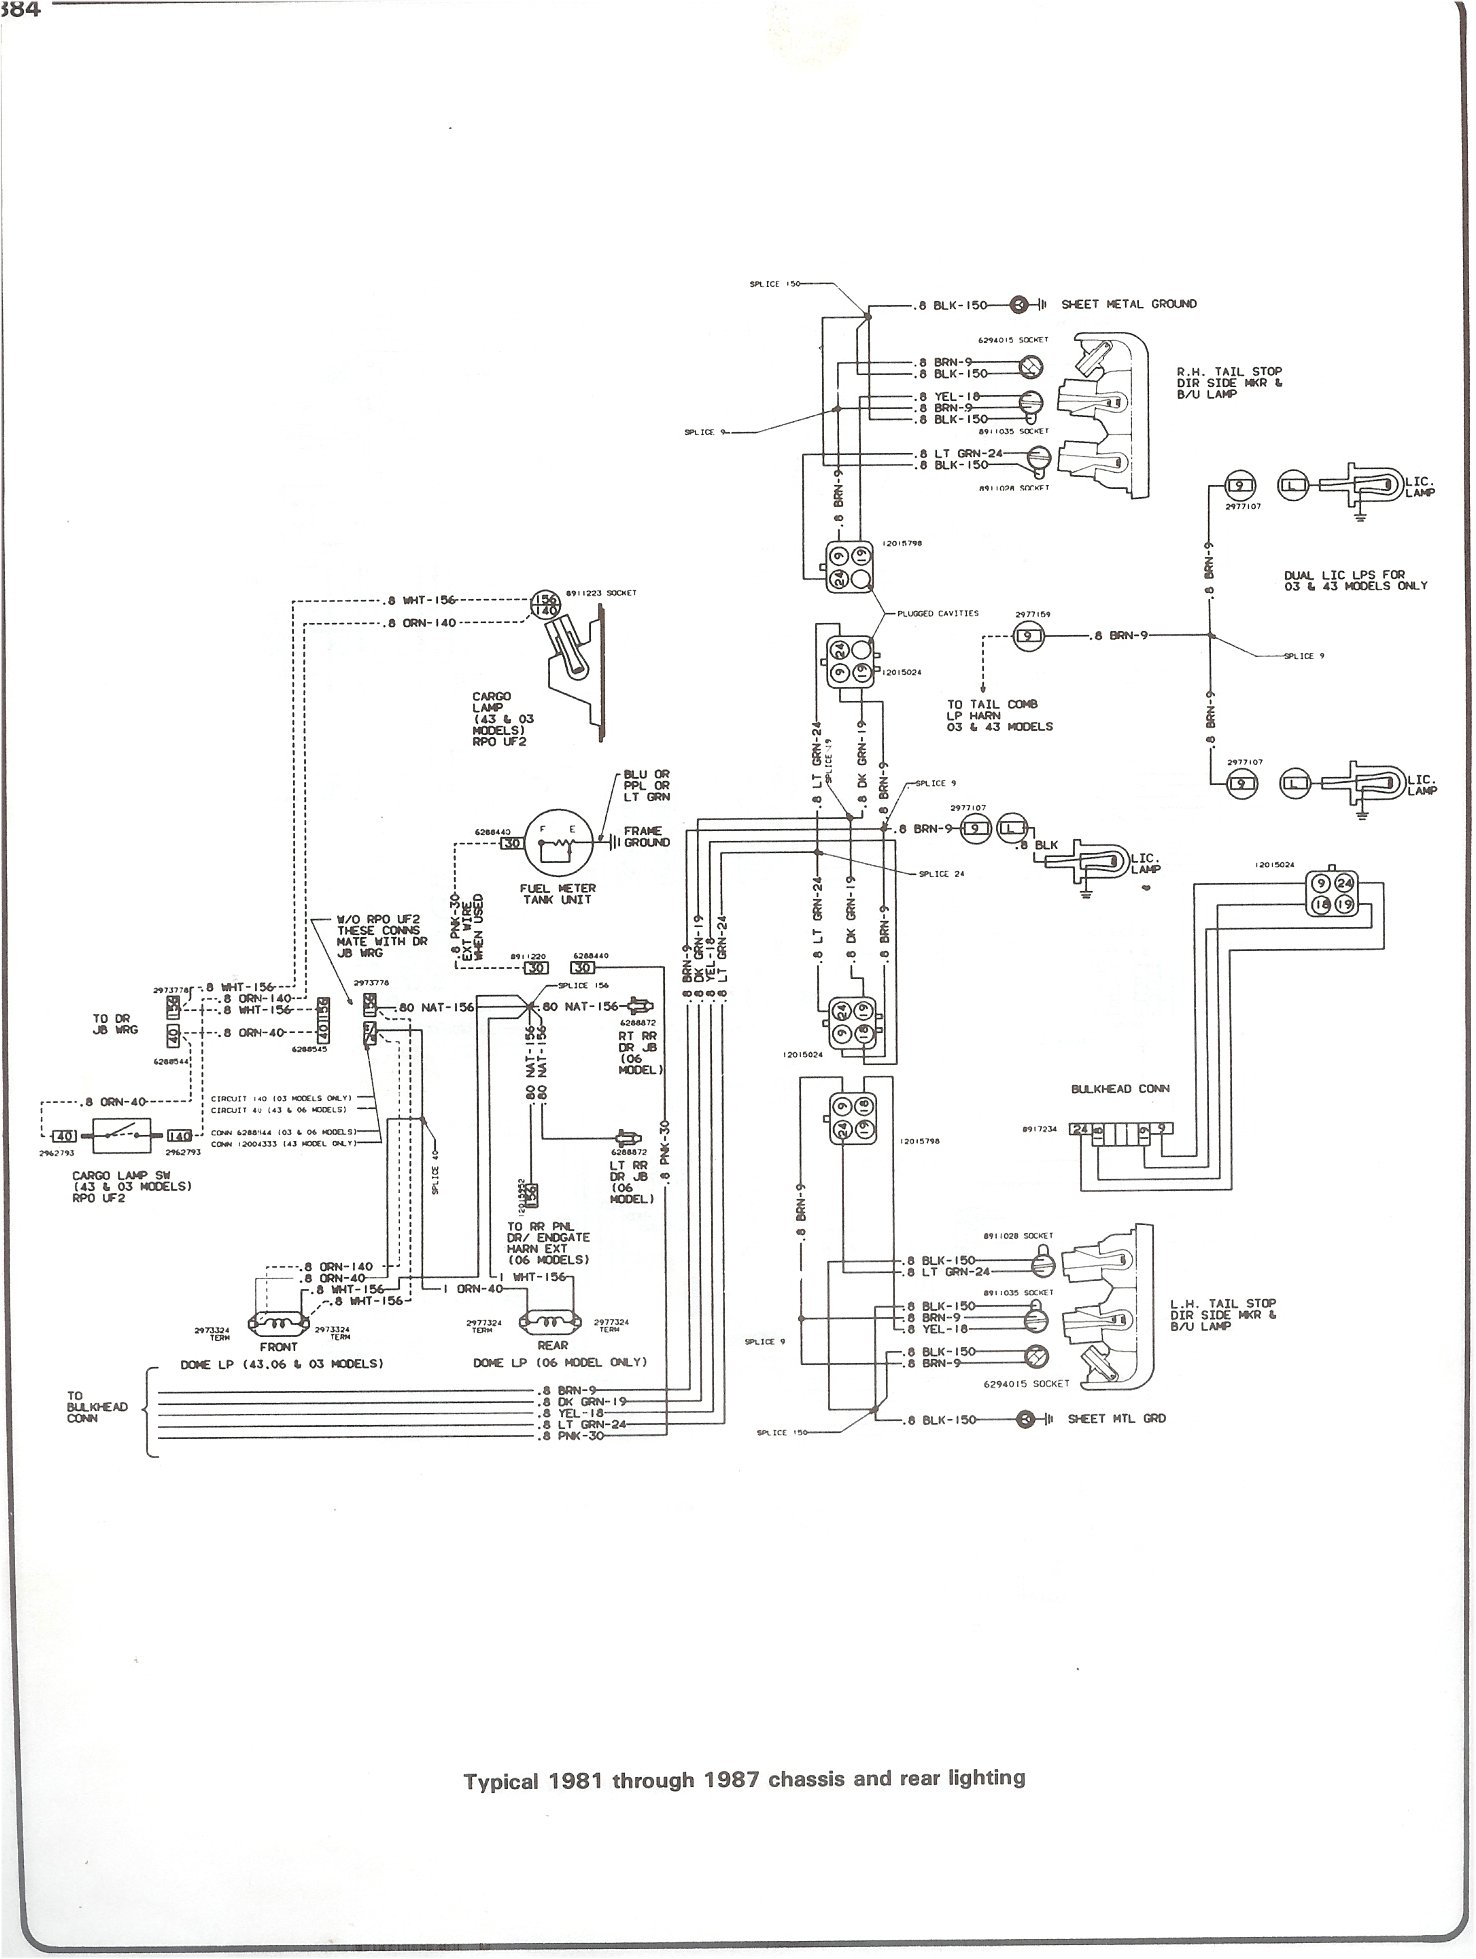 81 87_chass_rr_light complete 73 87 wiring diagrams 1979 c10 wiring diagram at bayanpartner.co